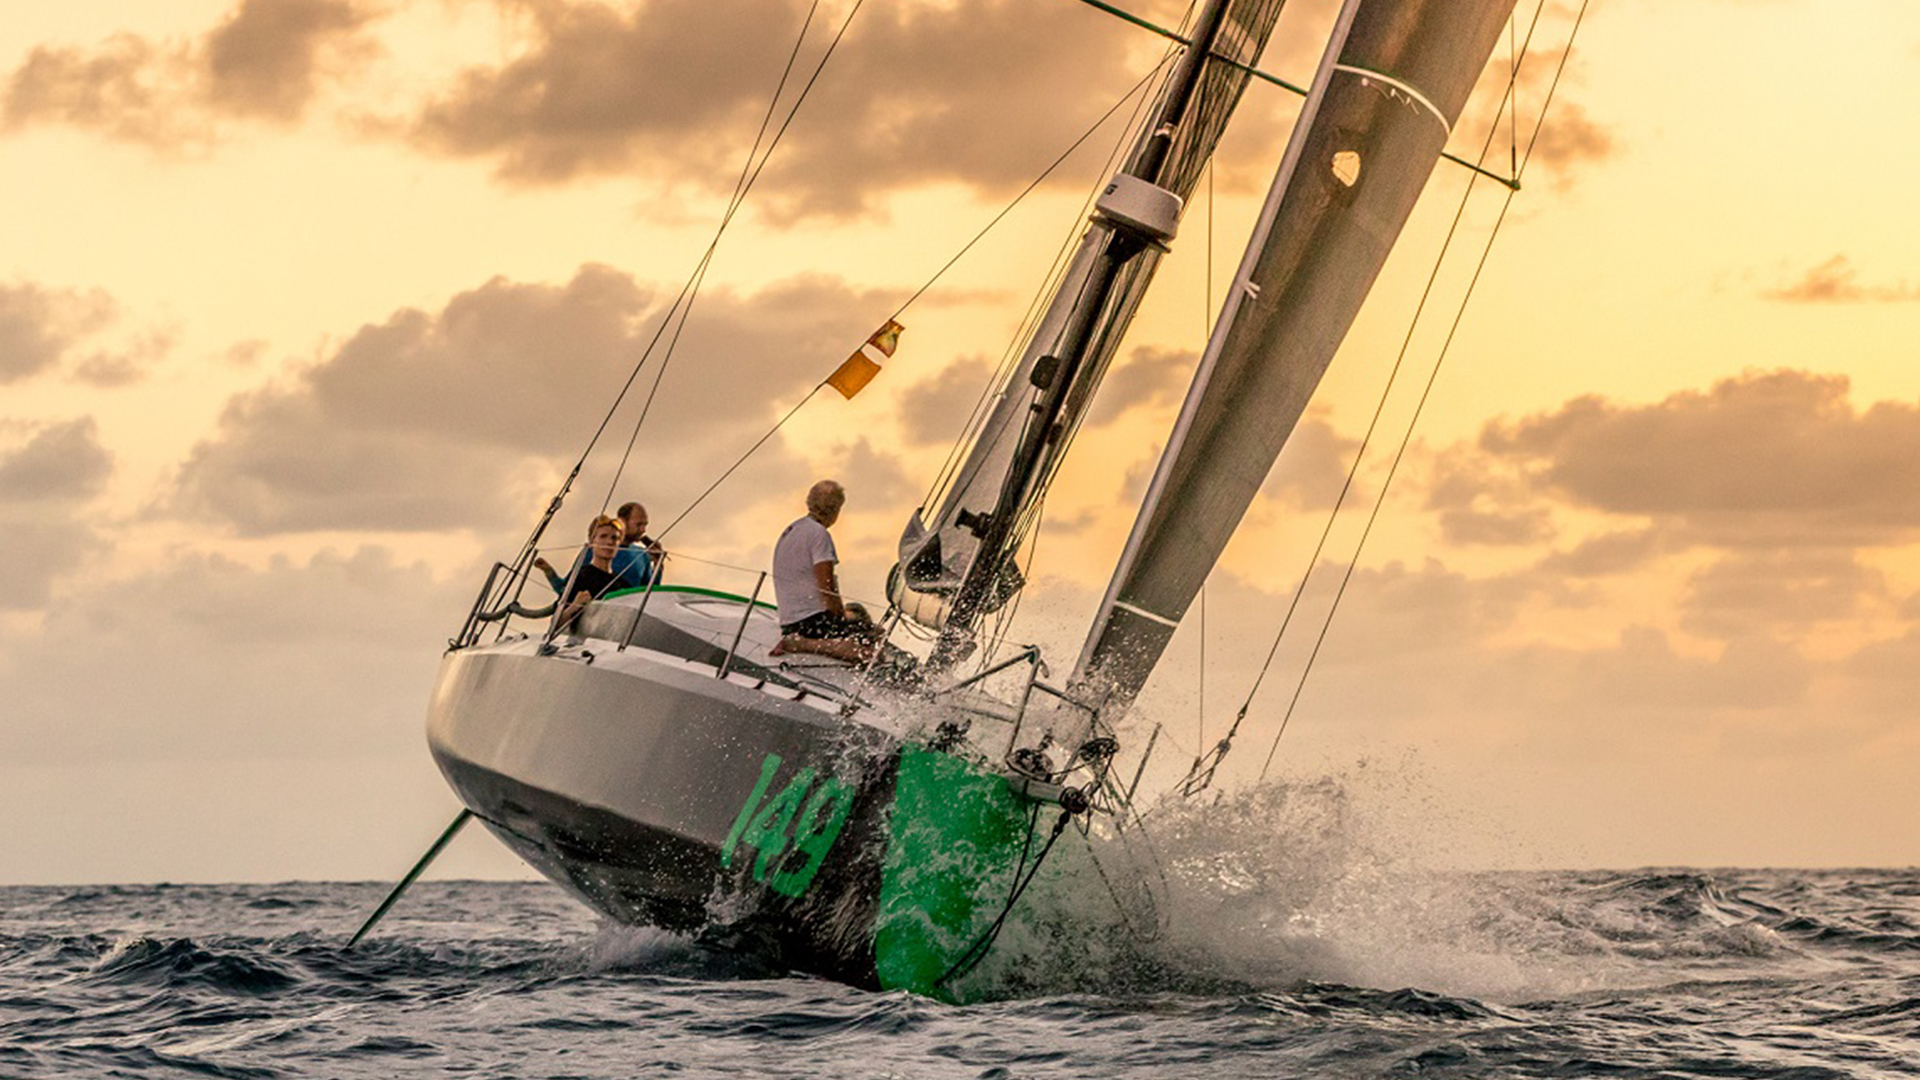 This is Hydra, an Owen Clarke Design Class 40 Open racing yacht taking part in the 2018 RORC Transatlantic Race